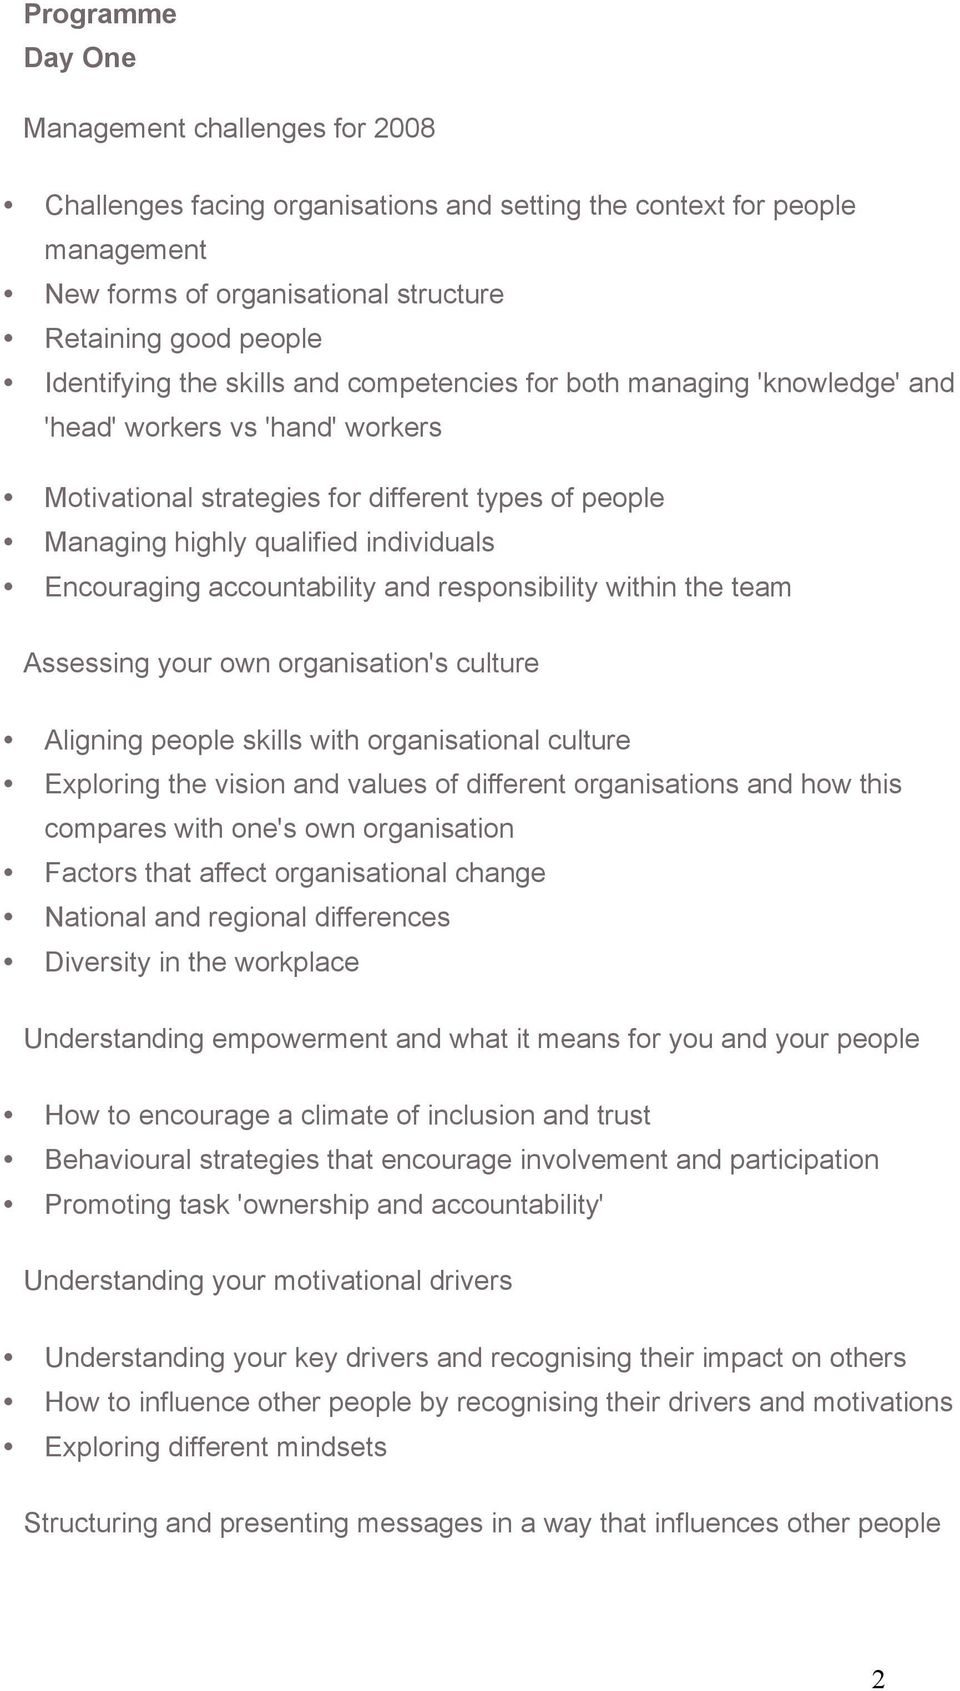 accountability and responsibility within the team Assessing your own organisation's culture Aligning people skills with organisational culture Exploring the vision and values of different